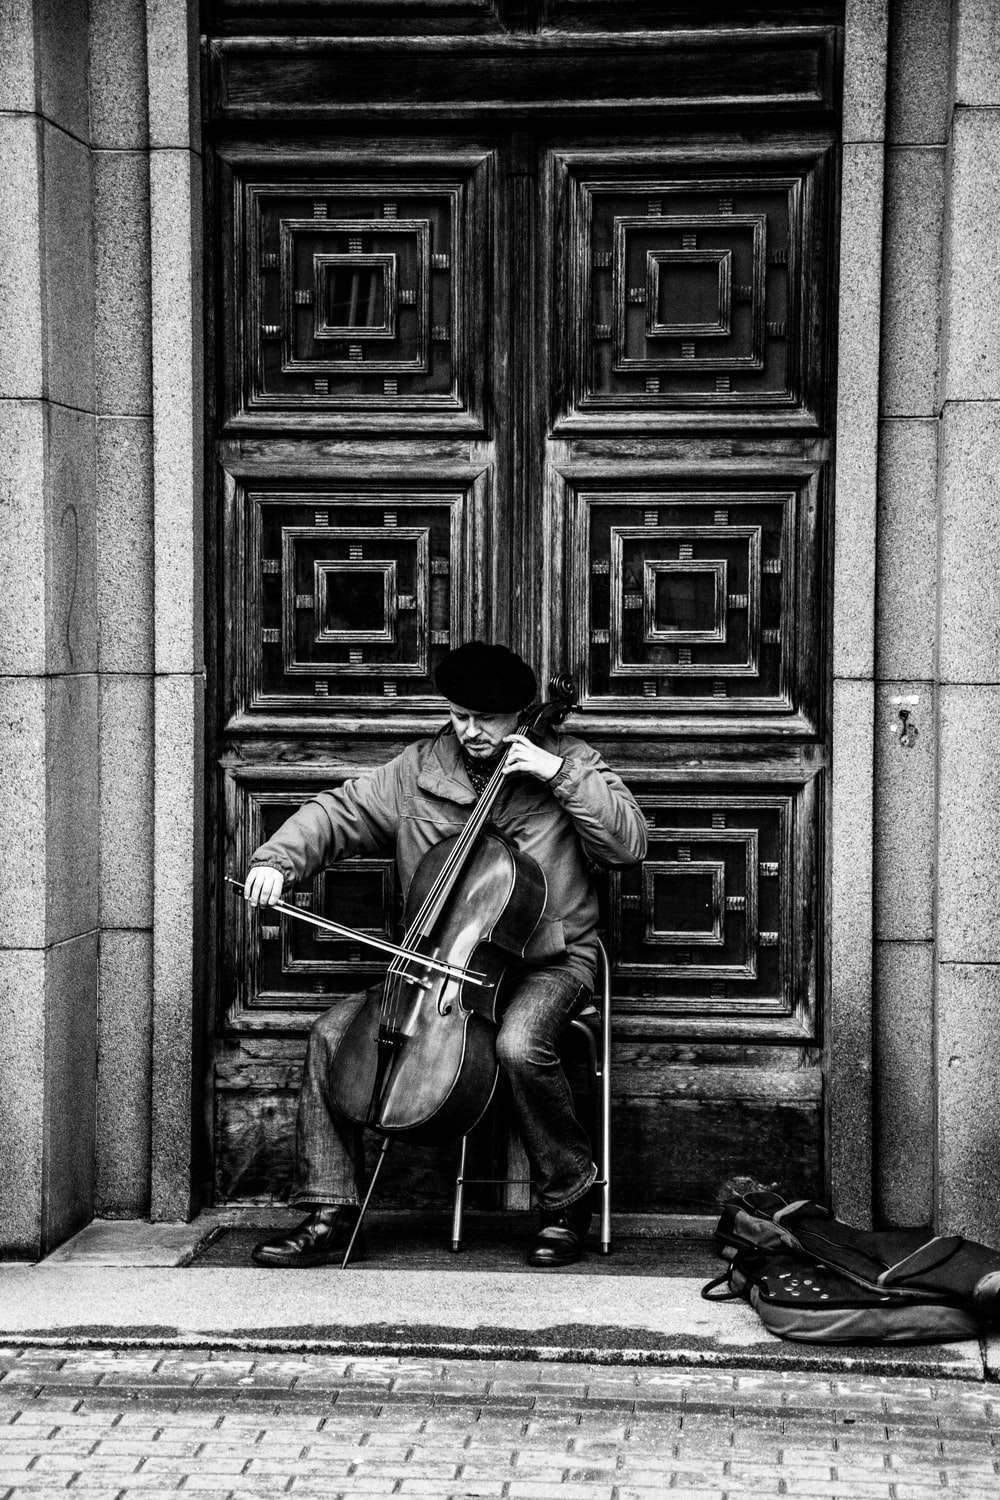 Black and white shot of street musician performing with cello in doorway in Riga